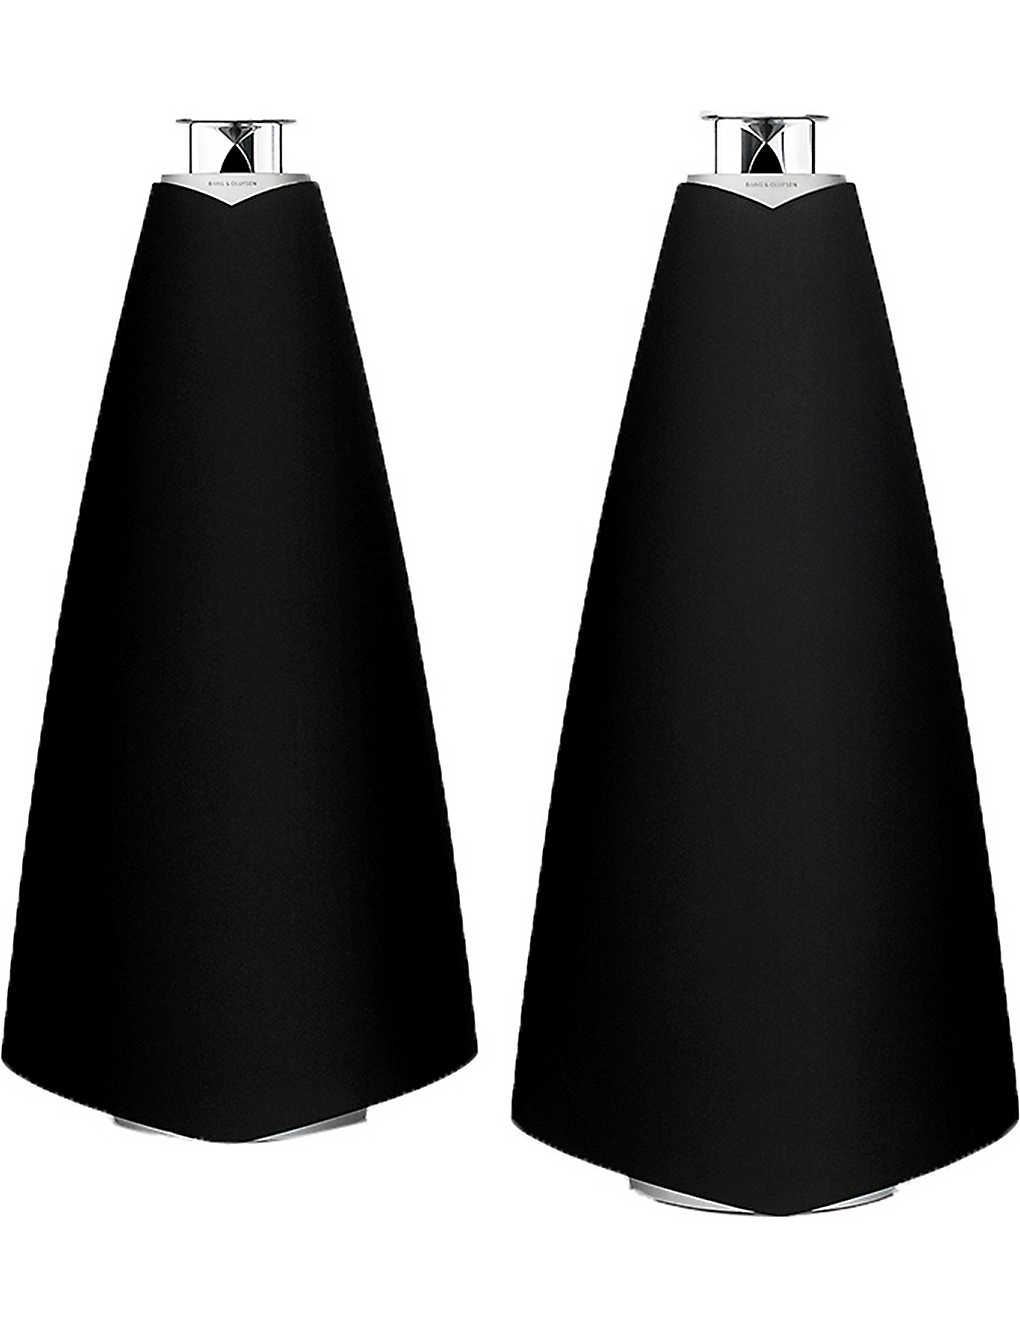 BANG & OLUFSEN: Beolab 20 wireless speakers